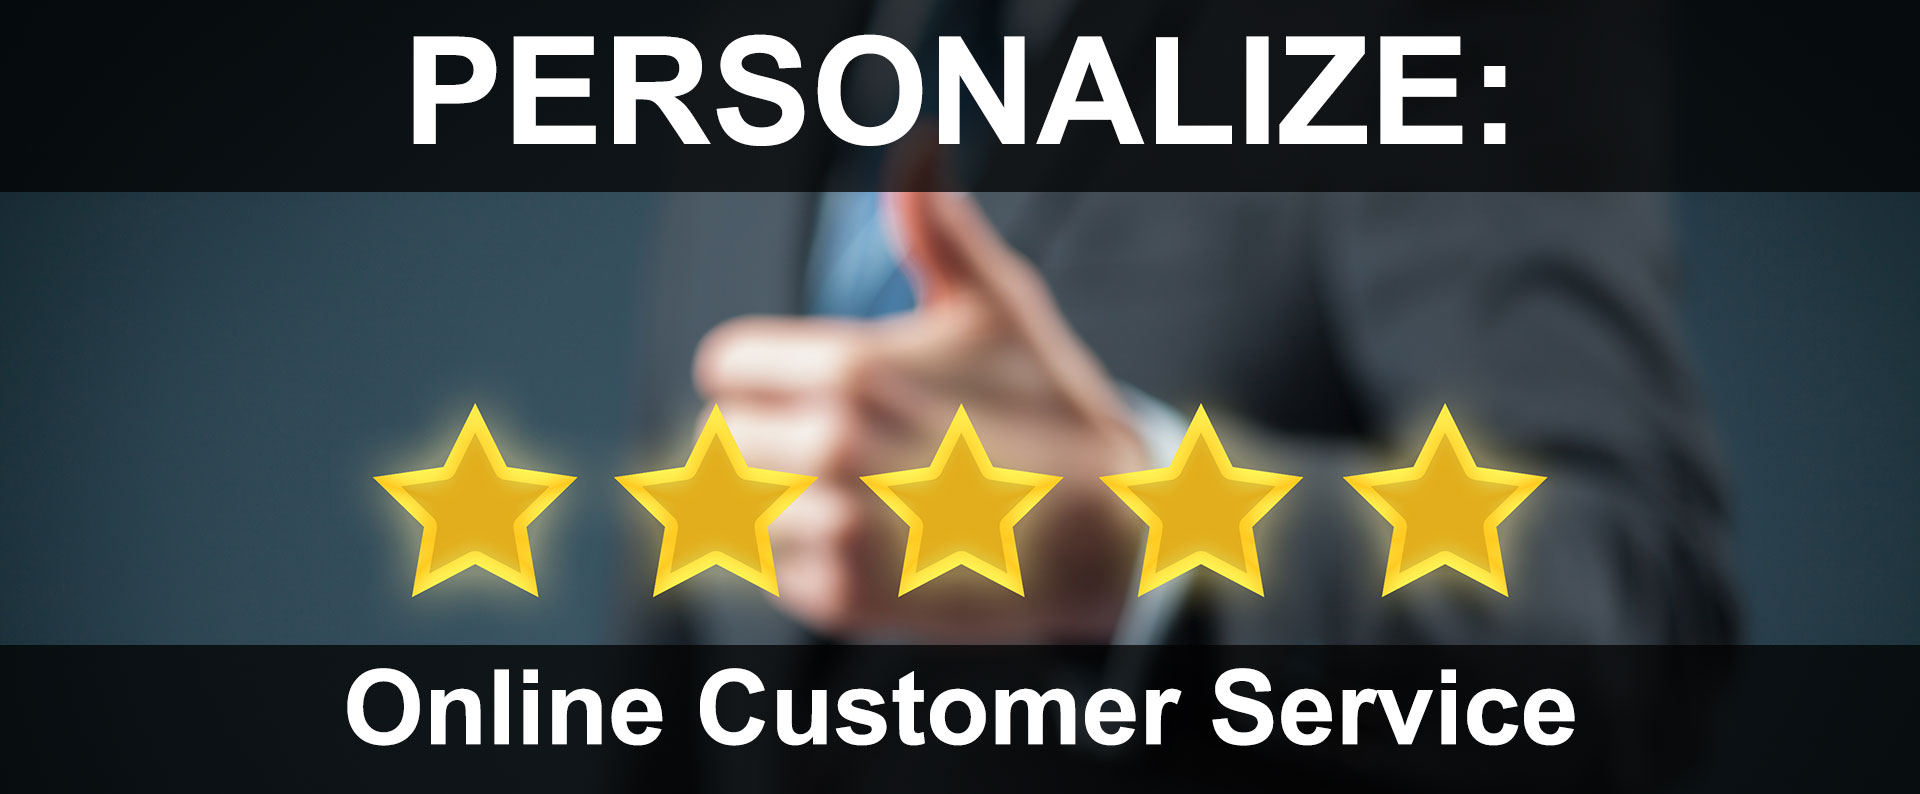 Personalizing Online Customer Service